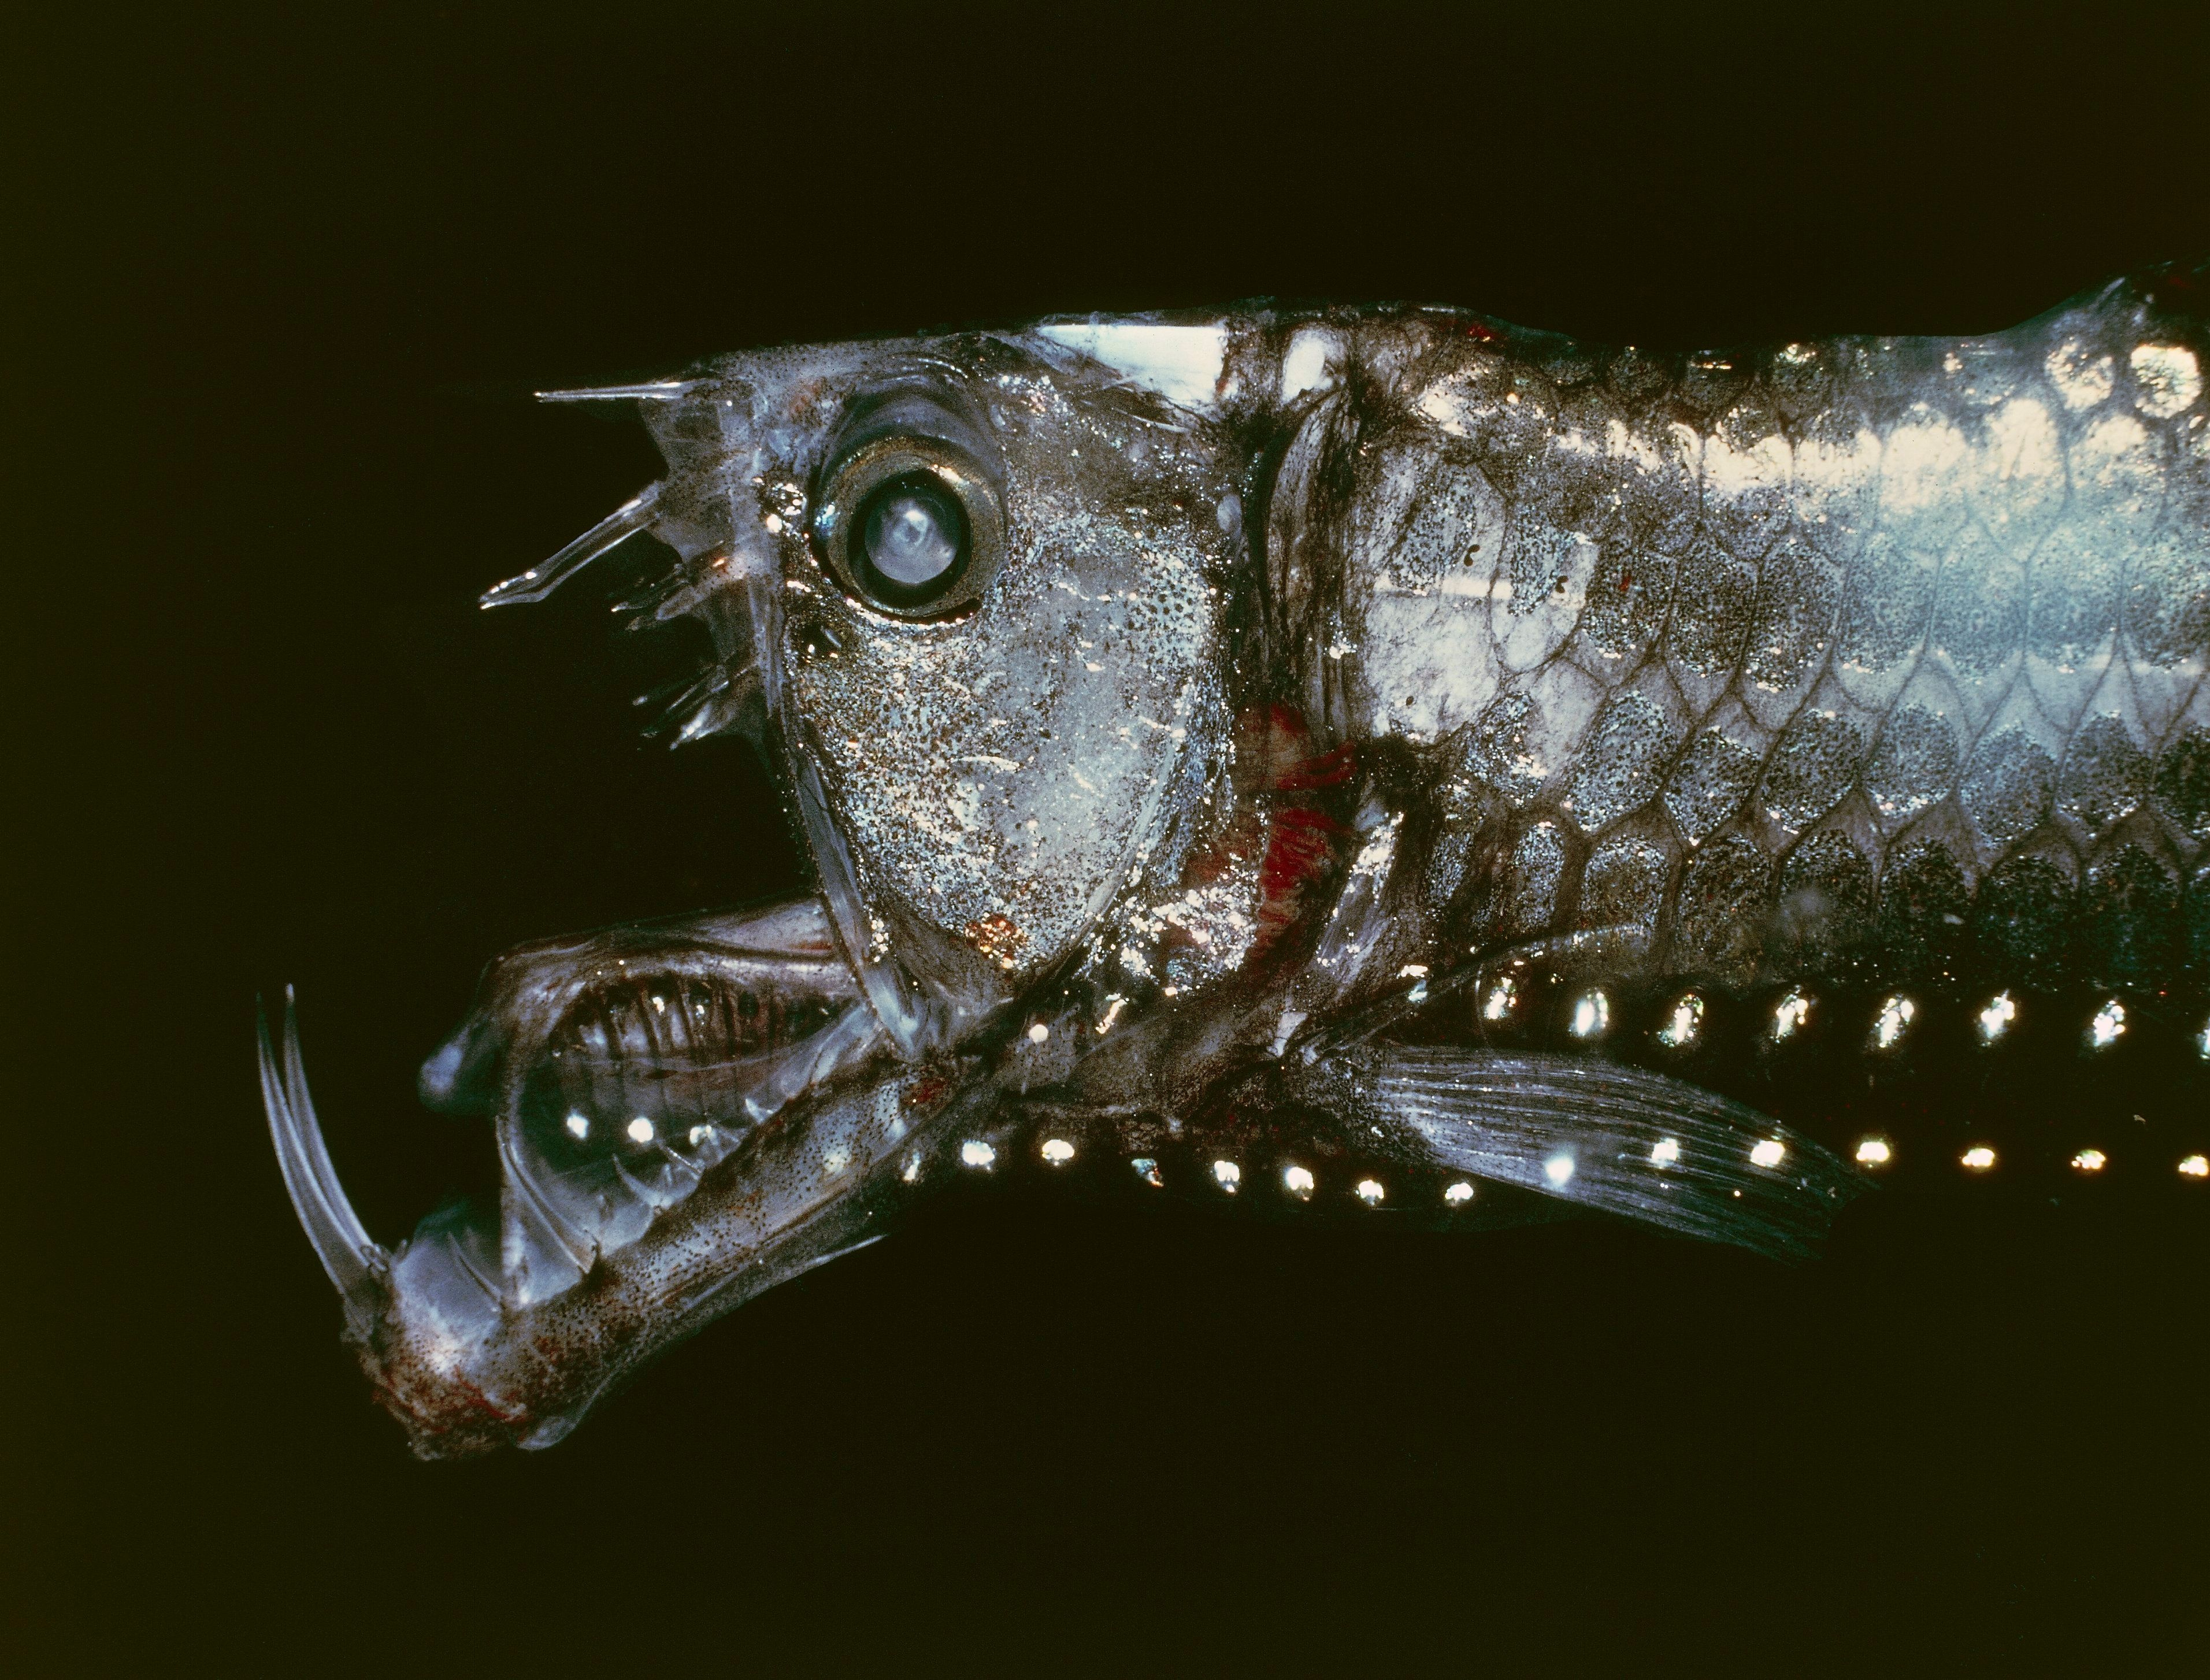 UNSPECIFIED - CIRCA 2002: Manylight Viperfish or Sloane's viperfish (Chauliodus sloani), Stomiidae. (Photo by DeAgostini/Getty Images)